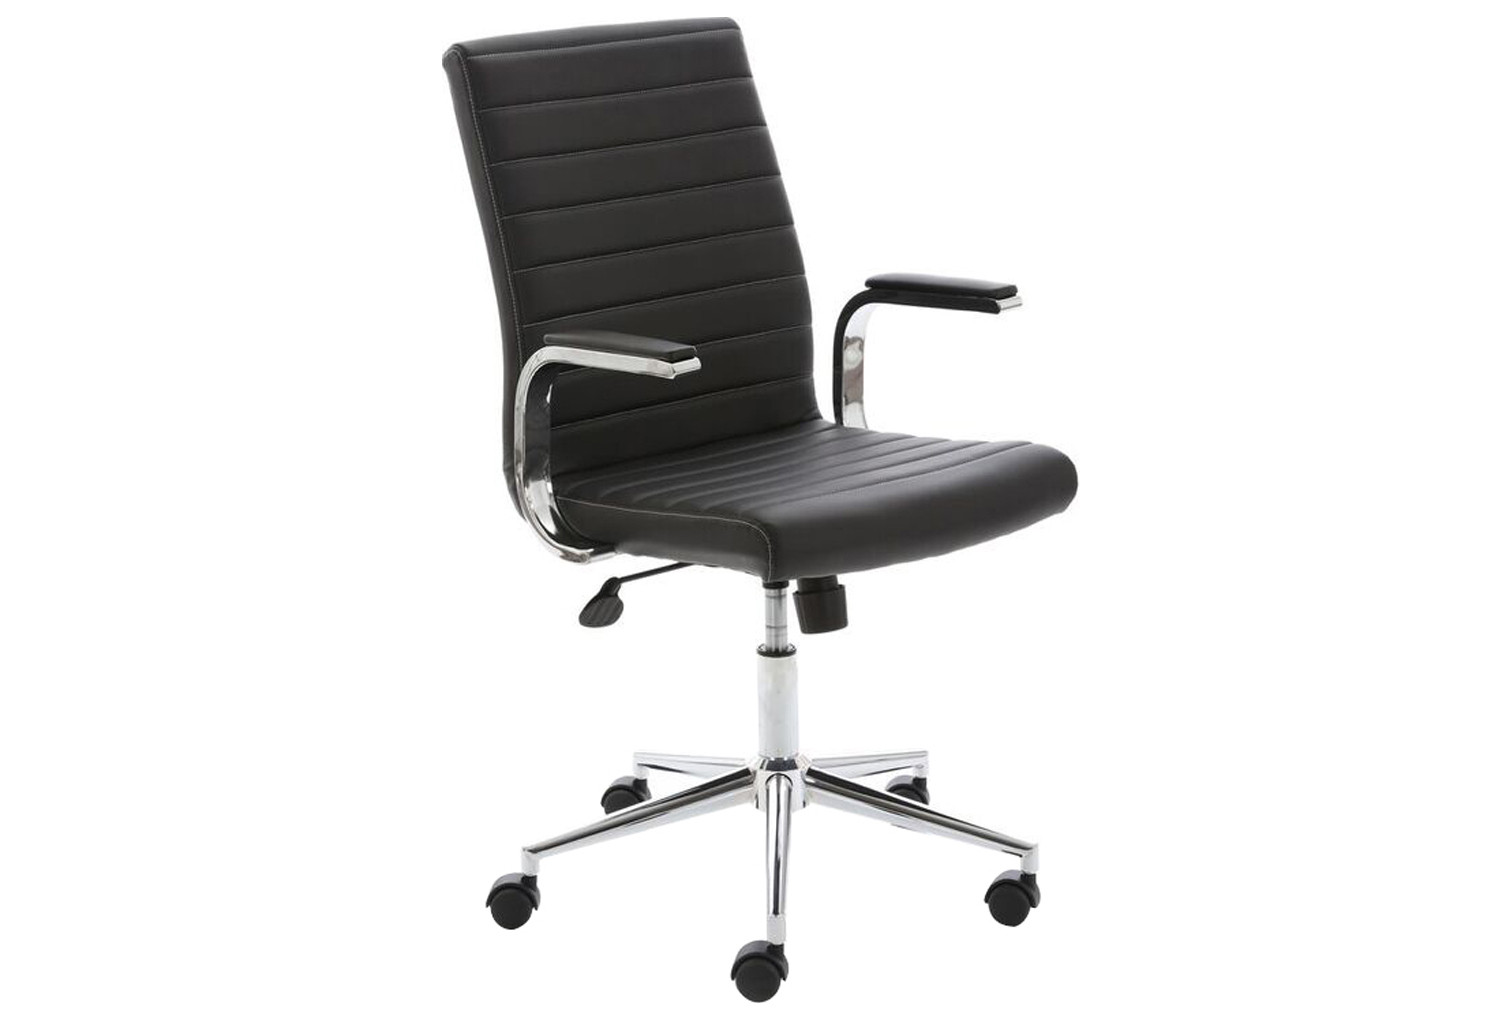 Wexford Executive Bonded Leather Chair (Black)